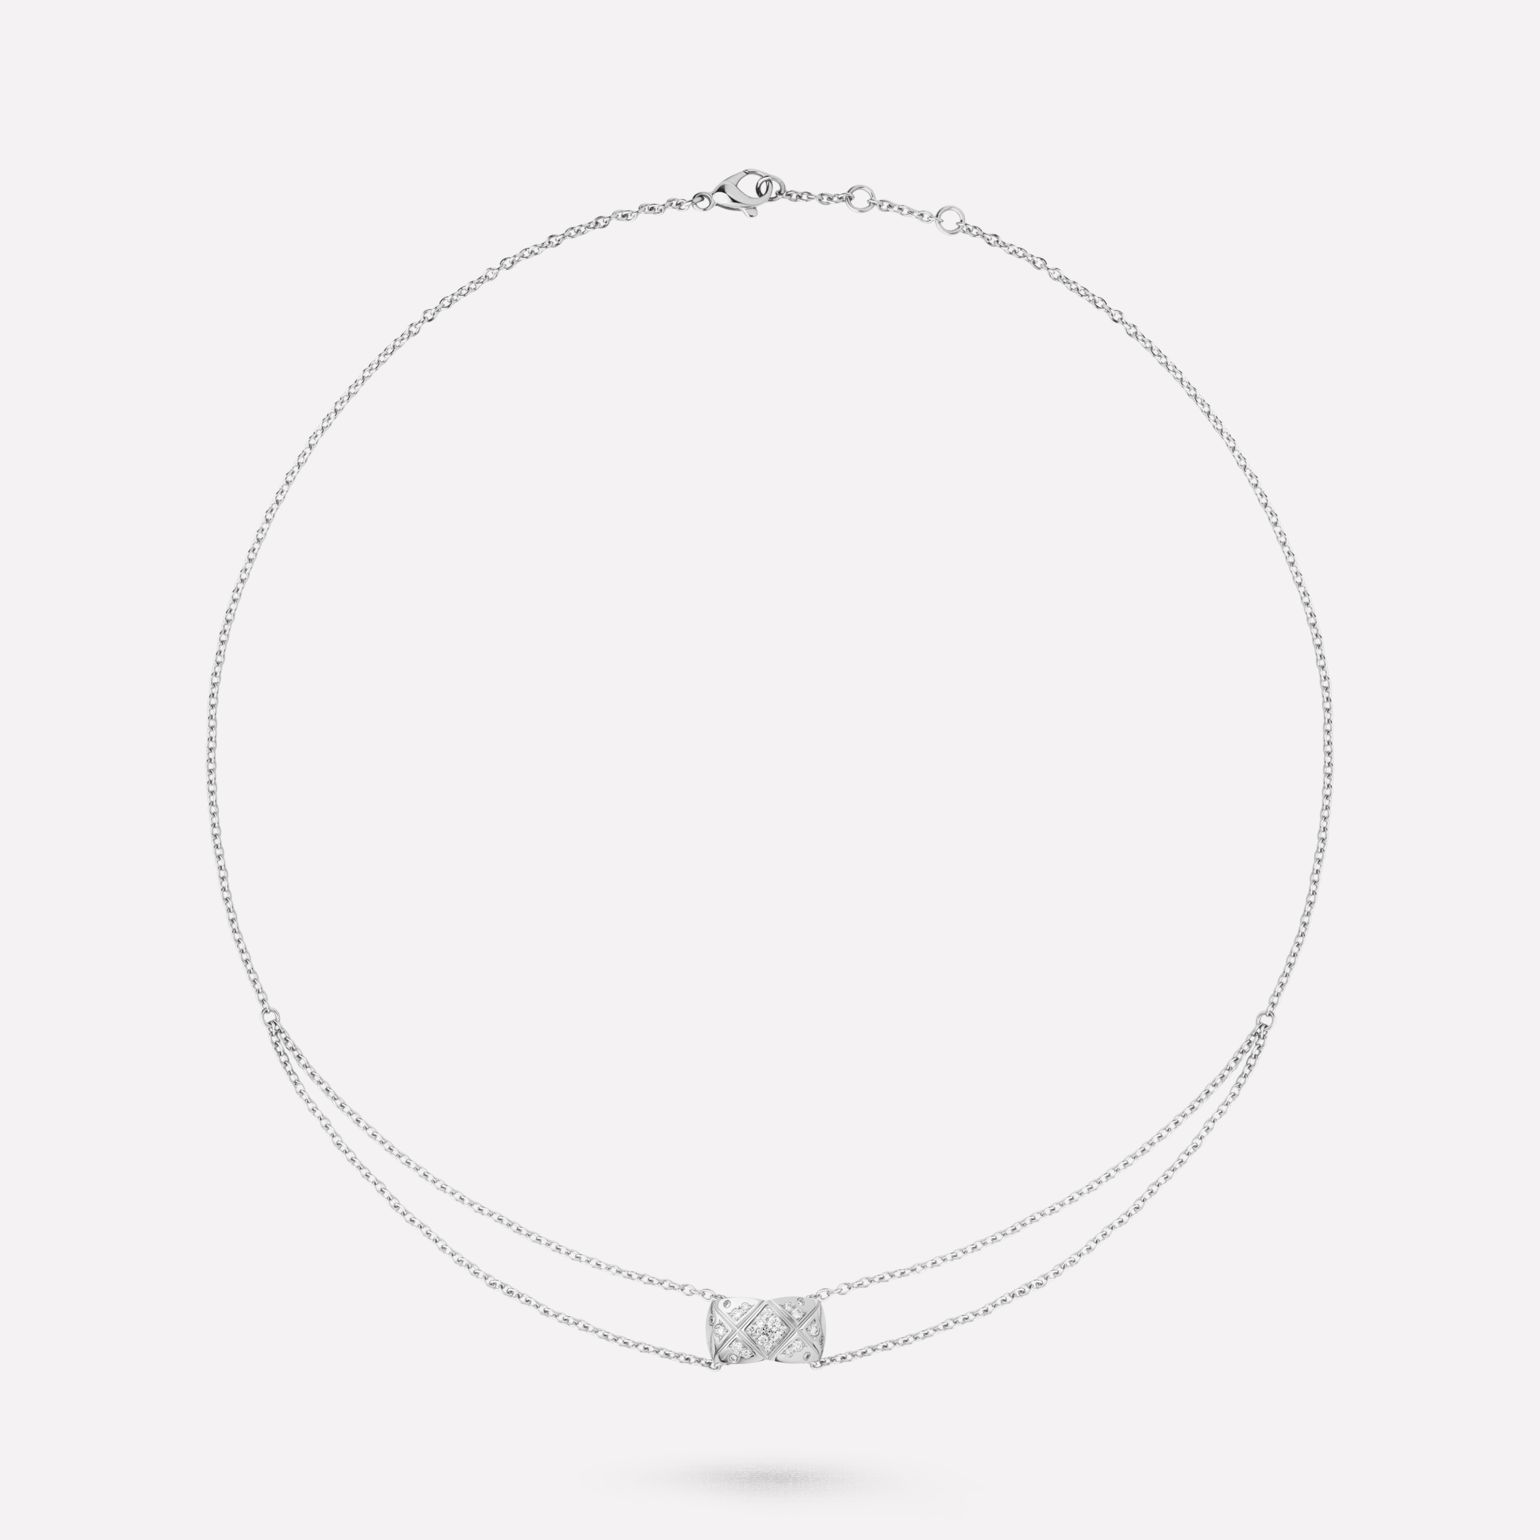 Coco Crush necklace Quilted motif, 18K white gold, diamonds